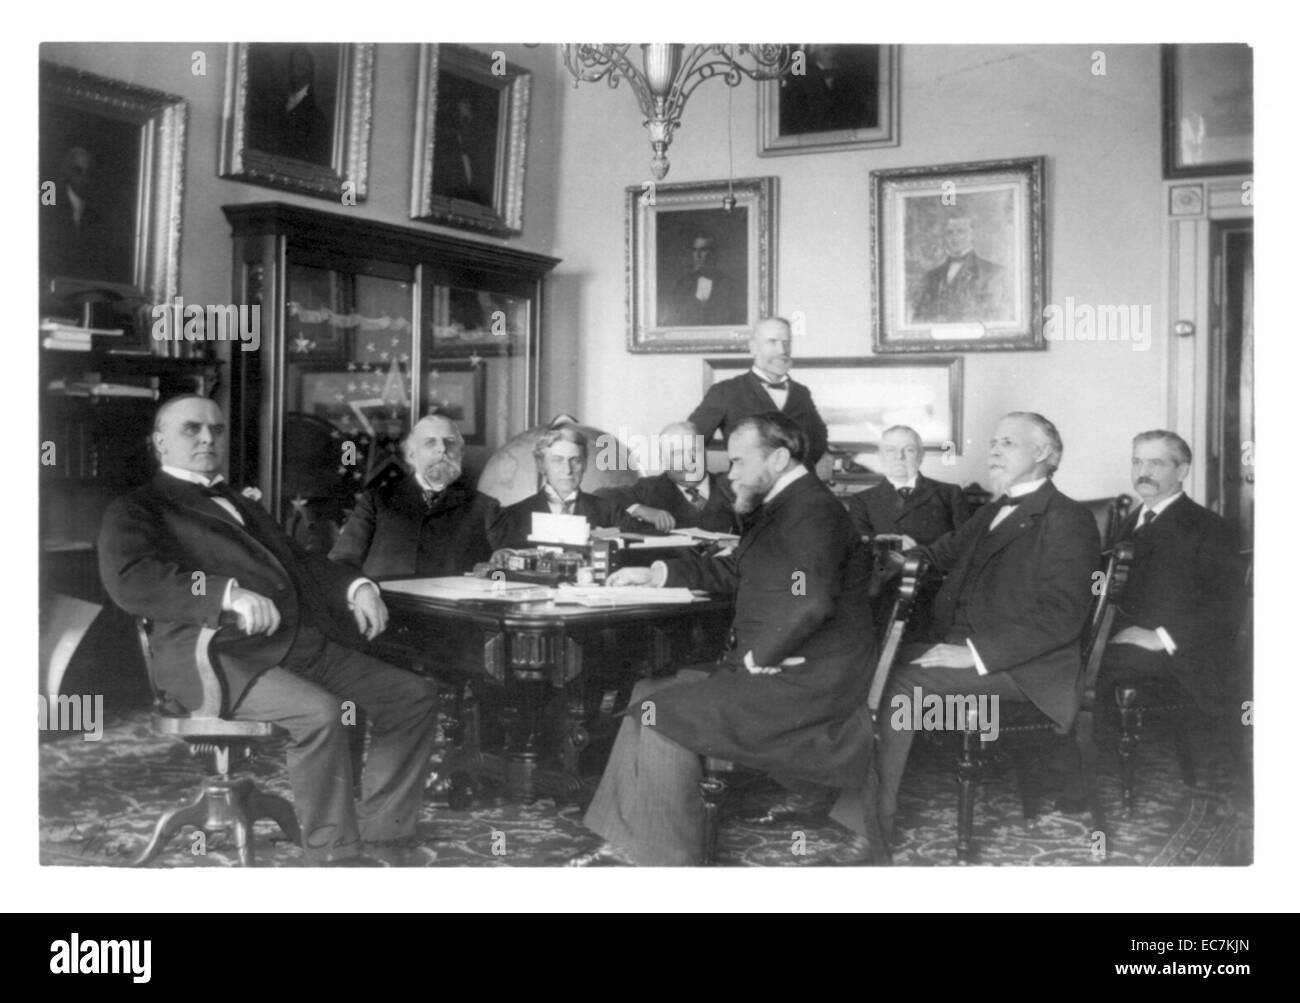 High Quality President William McKinley And His Cabinet Seated Around A Table. McKinley  Was The 25th President Of The United States And Led